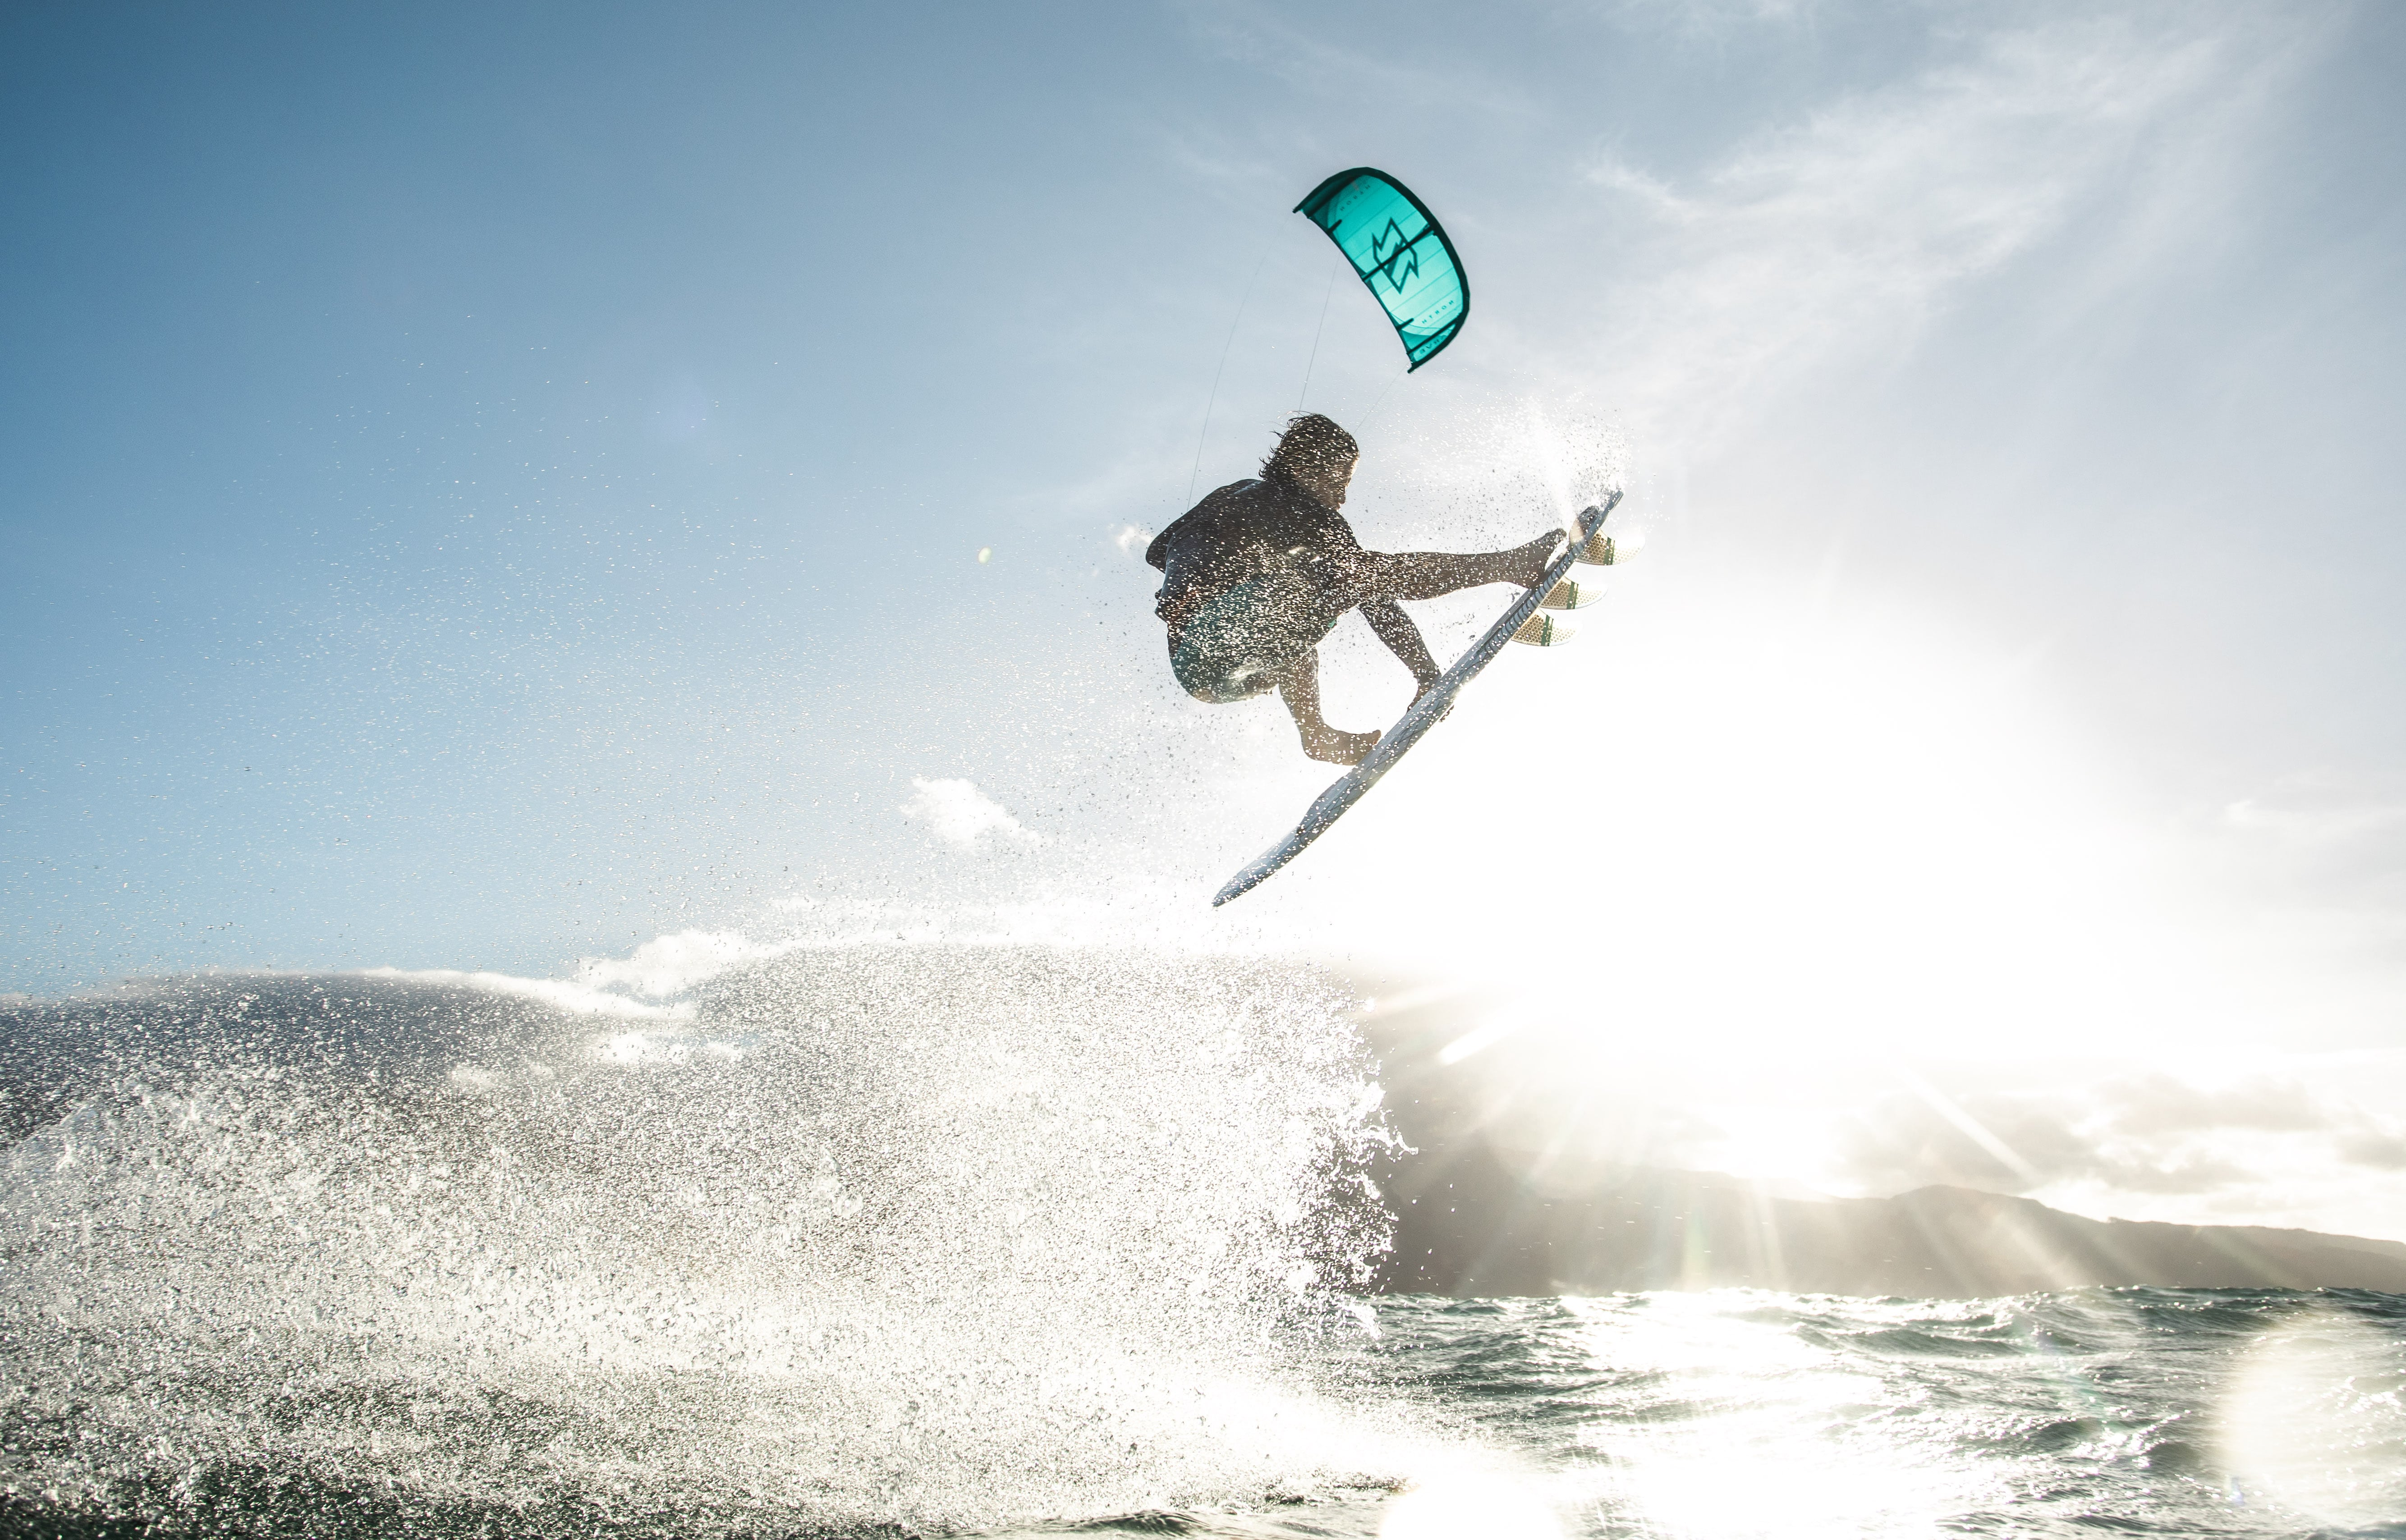 Jesse Richman kiting with North Carve kite